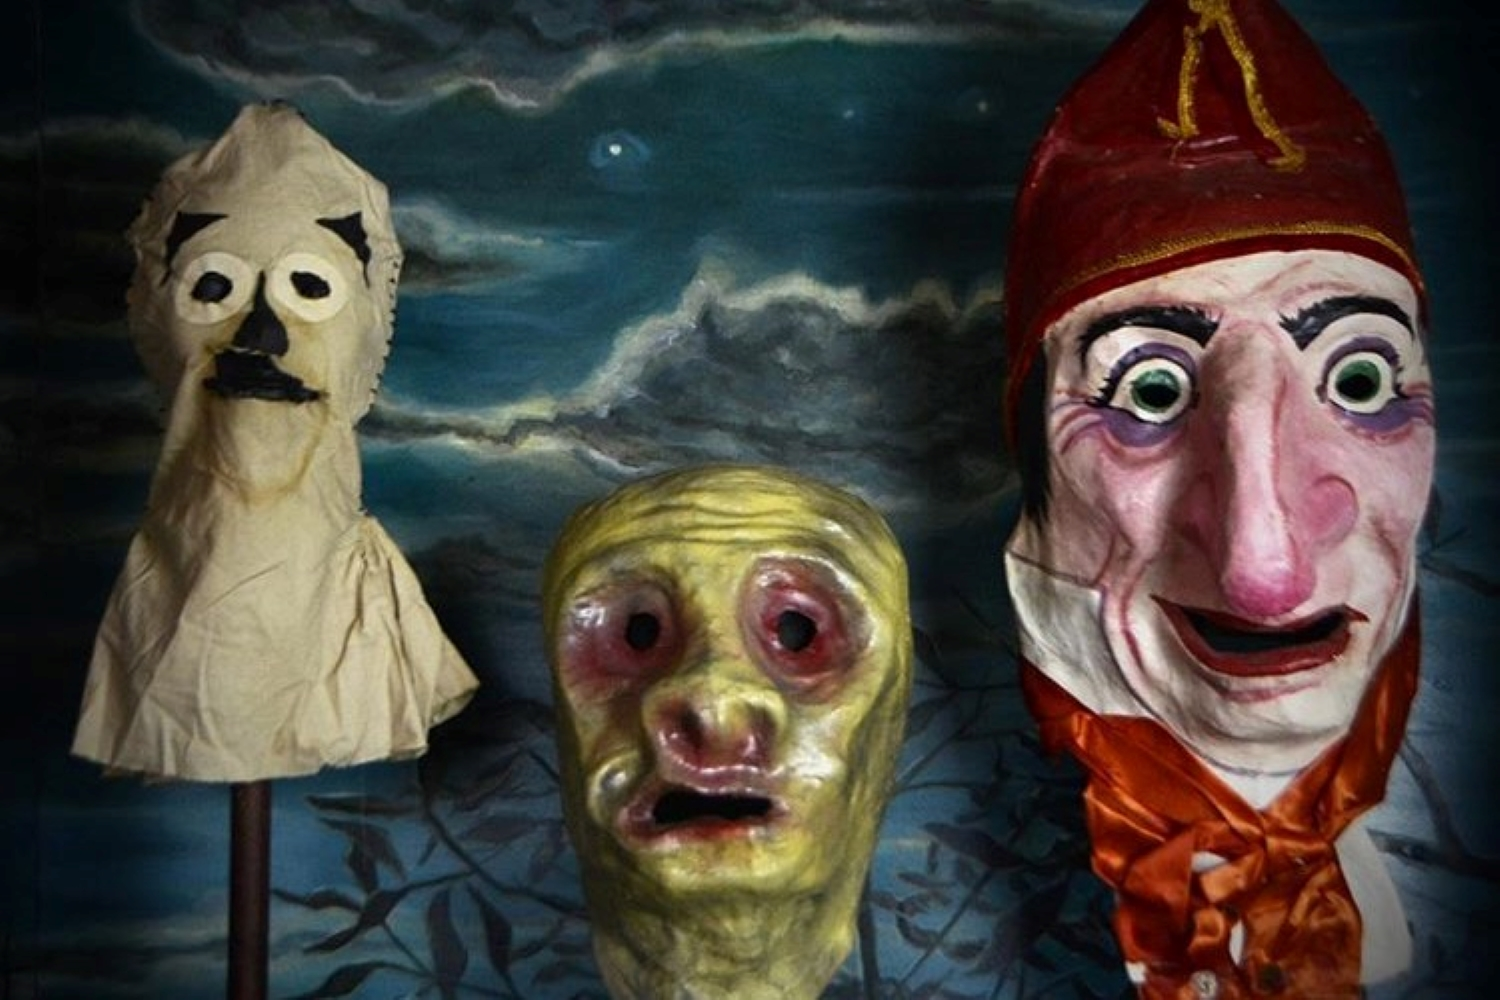 See Alberta's most haunting collection of objects at the Museum of Fear & Wonder